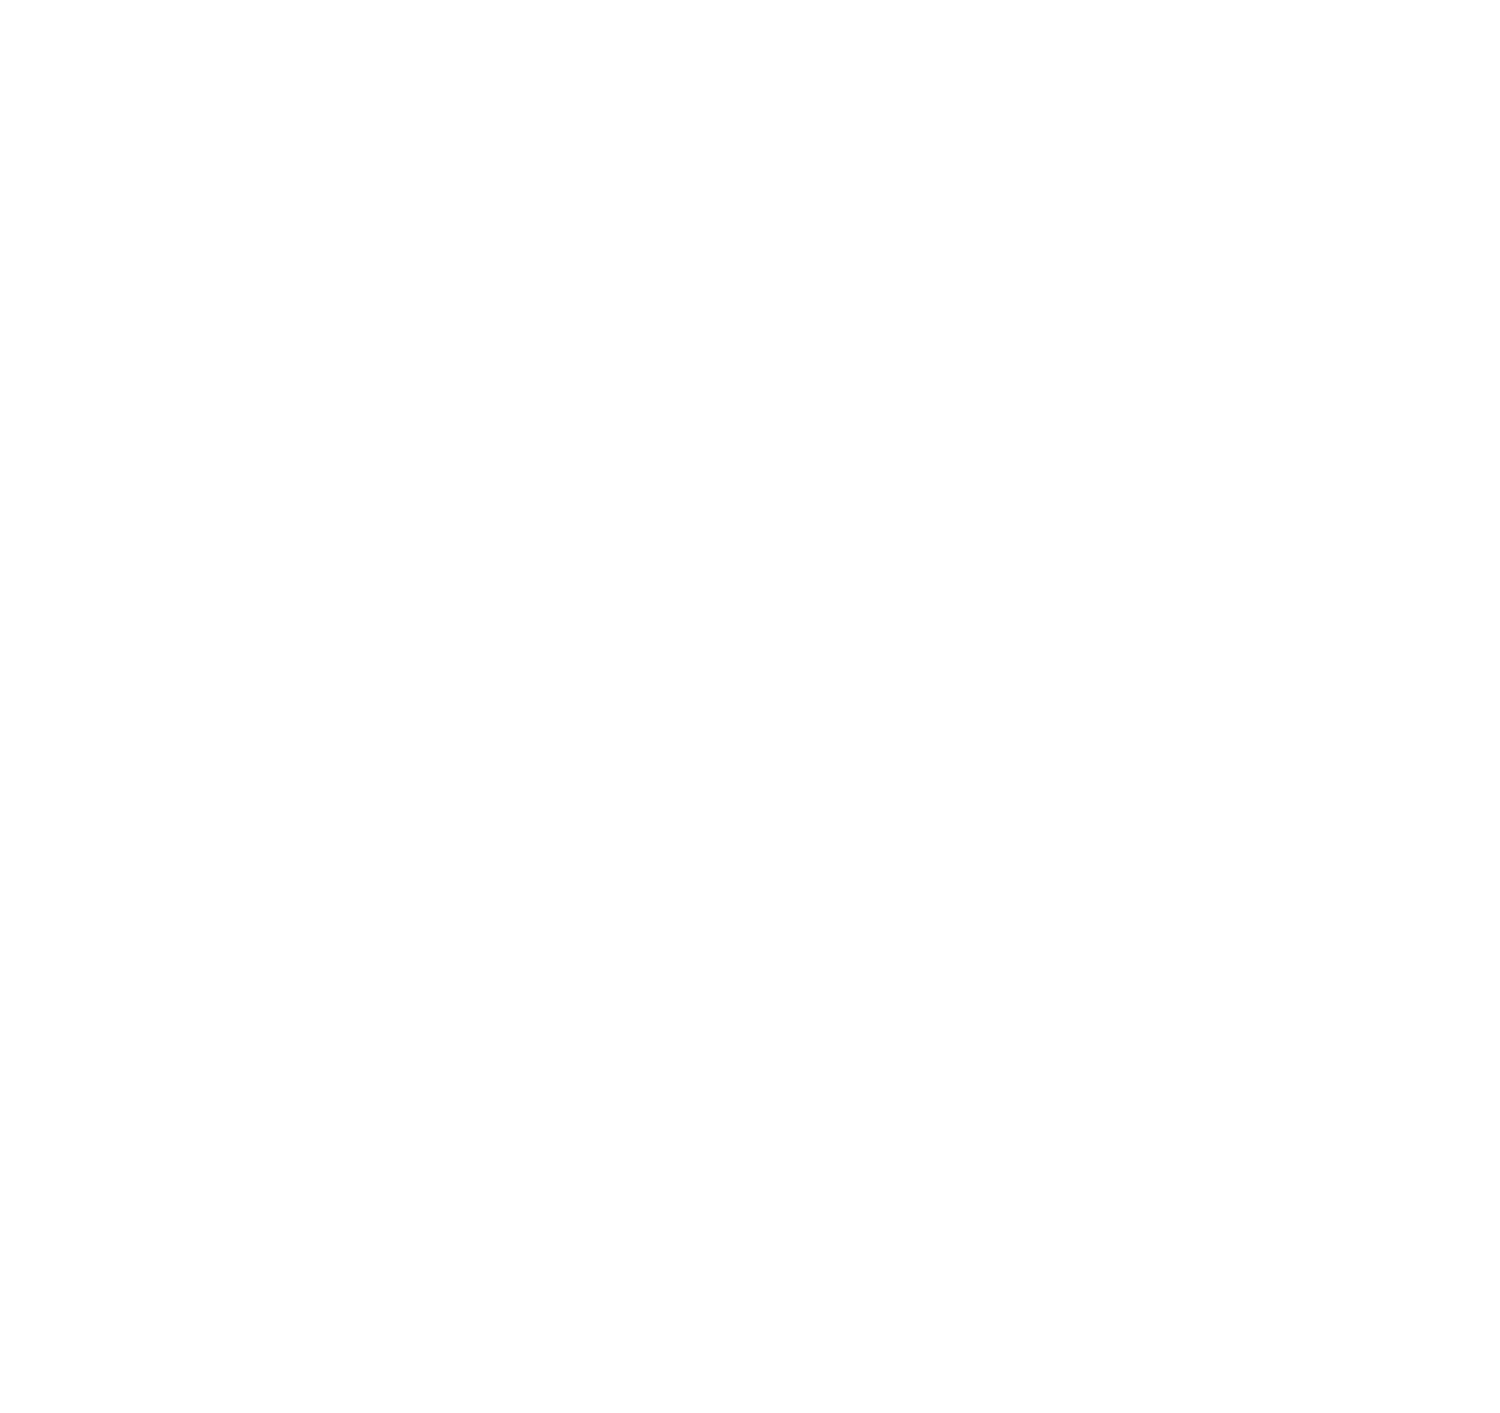 Denver Light Moving Pictures